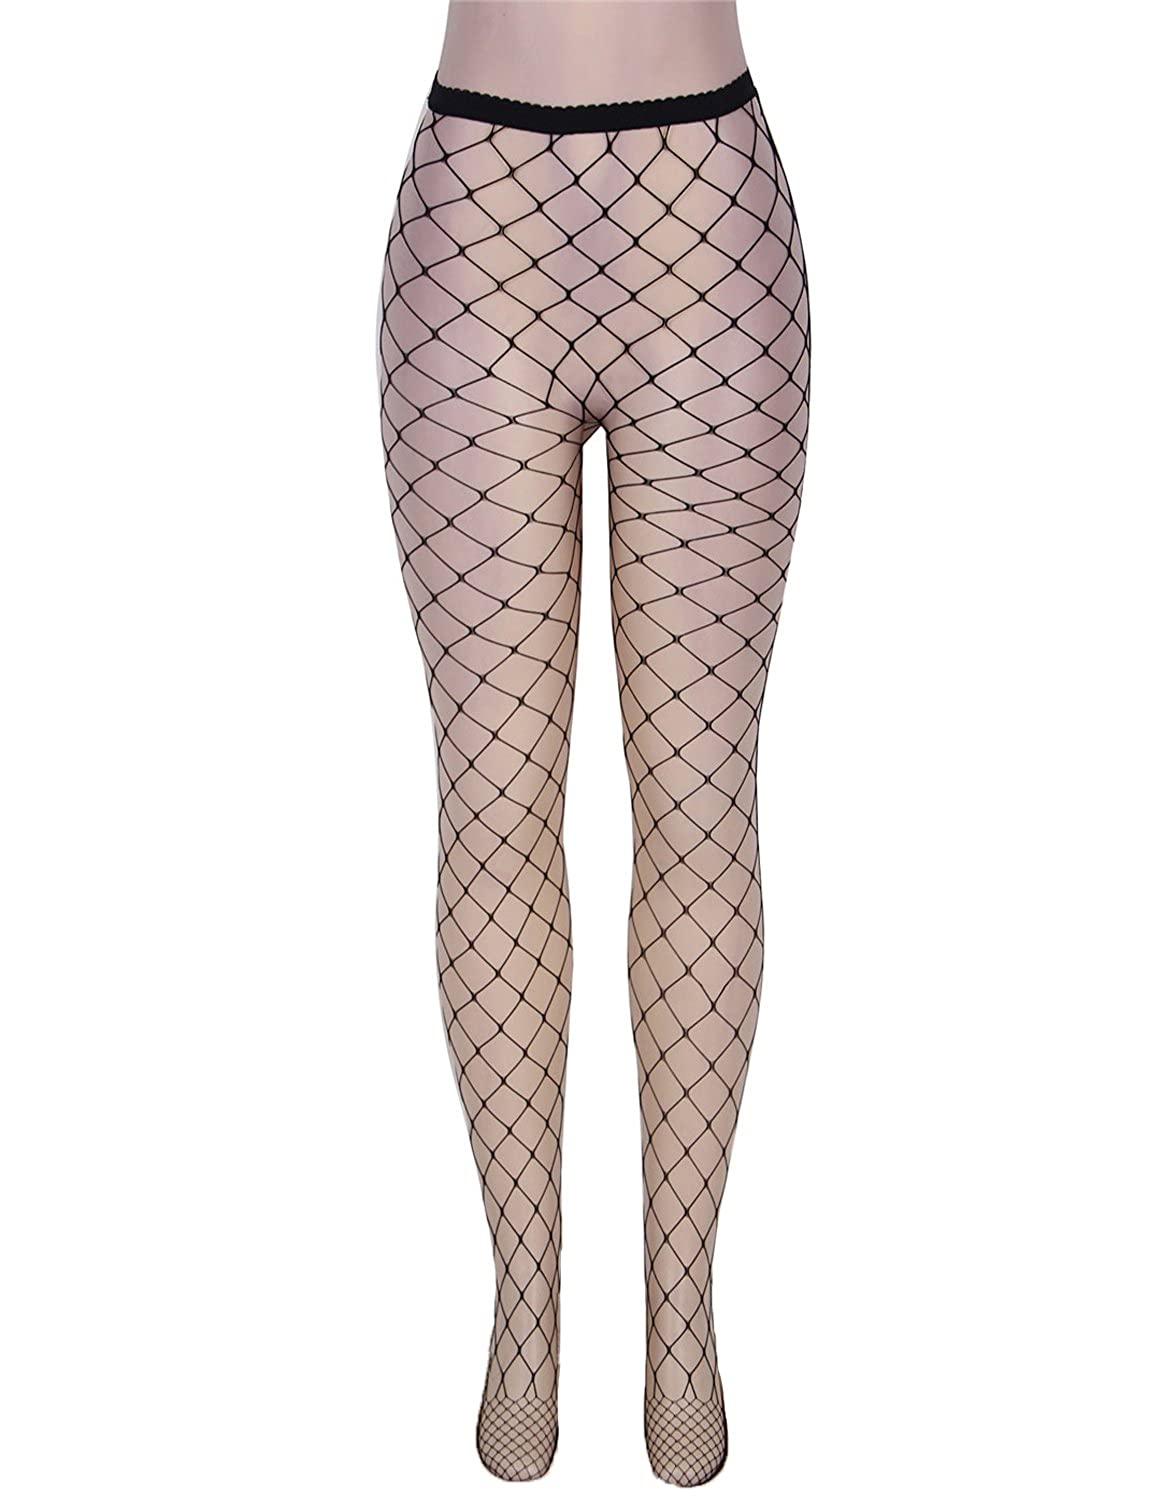 294fefed01f Yummy Bee Tights Whale Net Fishnet Lingerie Hosiery Pantyhose Black Size  8-14(Size M)  Amazon.co.uk  Clothing